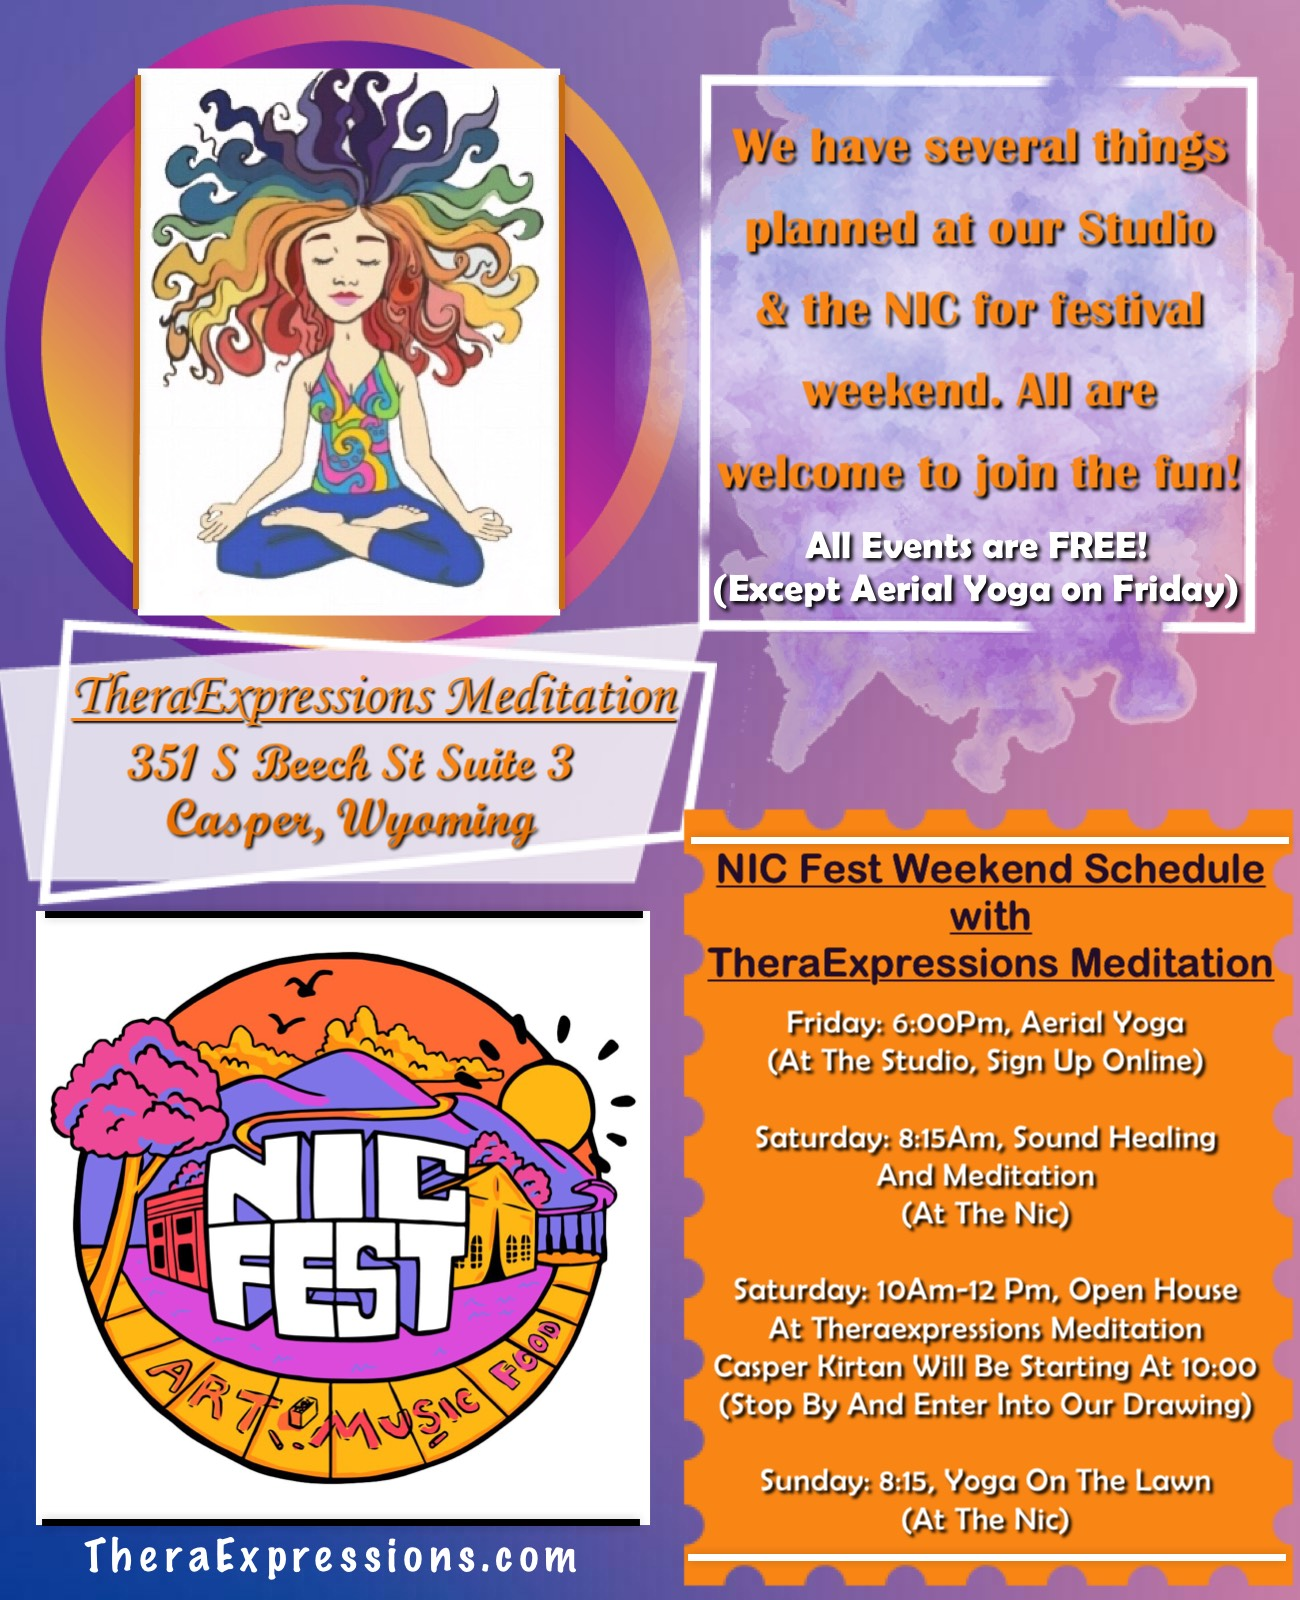 Friends! We are excited to be a festival sponsor this year for the NICfest! We have several things planned at the studio and at the Nicolaysen Art Museum for NICfest weekend that we hope that you can join in on!   All events are free (Aerial Yoga Friday night is 15.00) Bring your yoga mat!  Here is the schedule for NICfest weekend in collaboration with Theraexpressions Meditation. ( Please note that these events are an added bonus to NICfest festivities!  Friday: 6:00 p.m. Aerial Yoga (studio) Sign up online  Saturday: 8:15 a.m. Sound Healing and Meditation (at the NIC)  Saturday: 10:00 a.m.-12:00 p.m. (OPEN house at the studio)   Casper Kirtan will be starting at 10:00 a.m. (stop by and enter into our drawing)   Sundays: 8:15 a.m. Yoga on the Lawn (at the NIC)